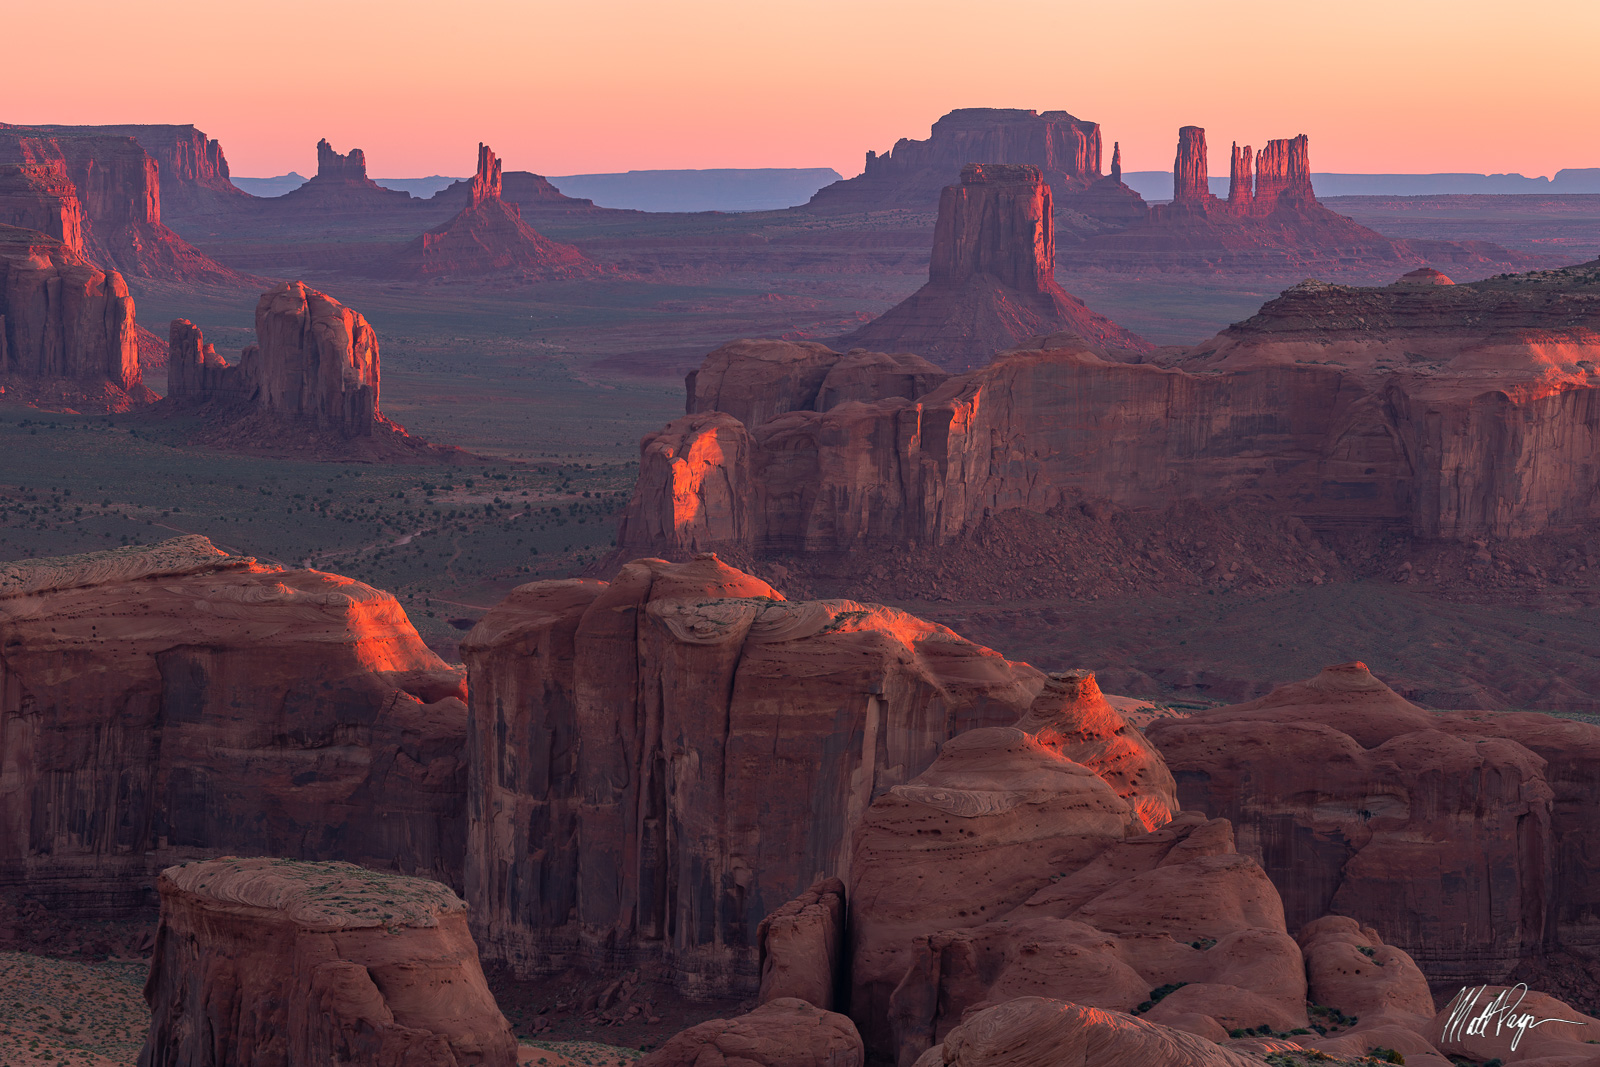 This grand scenic landscape photograph features an incredible view of the iconic sandstone formations in Monument Valley from...